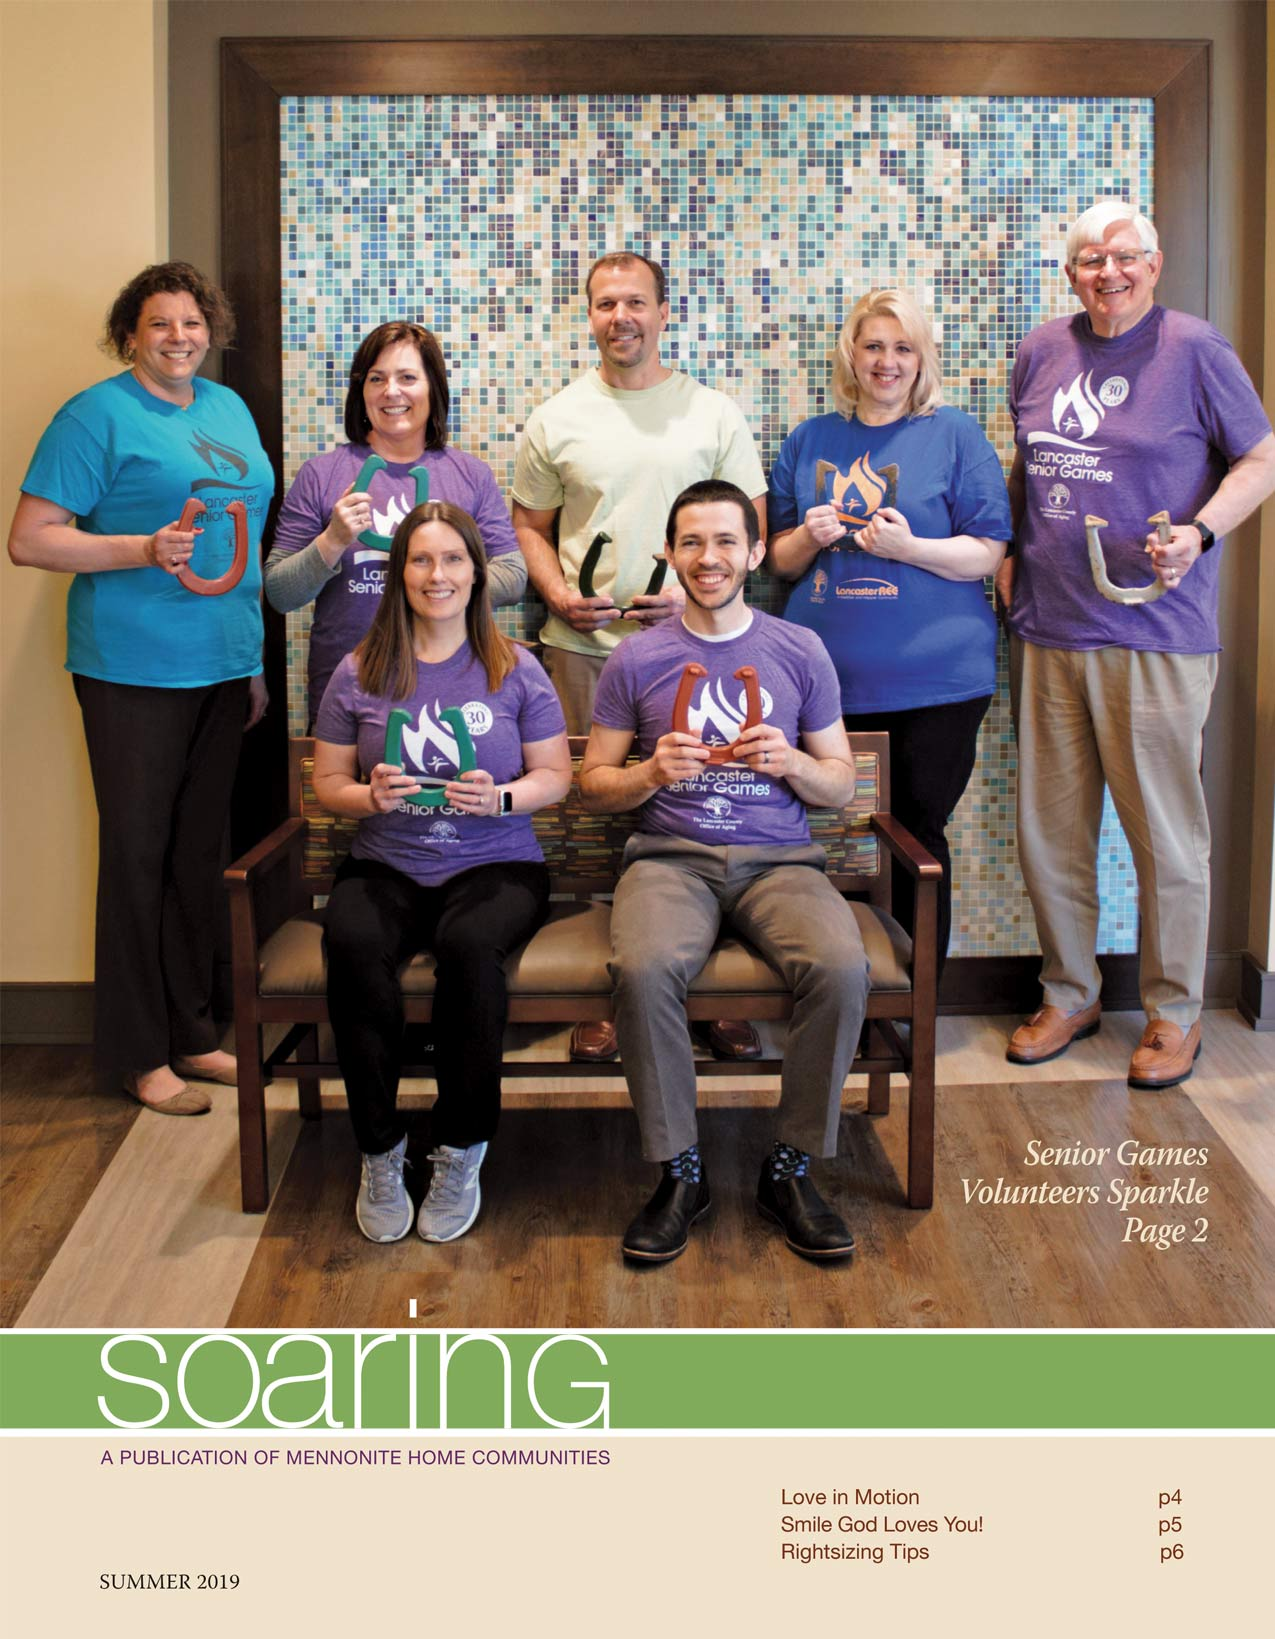 Summer 2019 Soaring cover